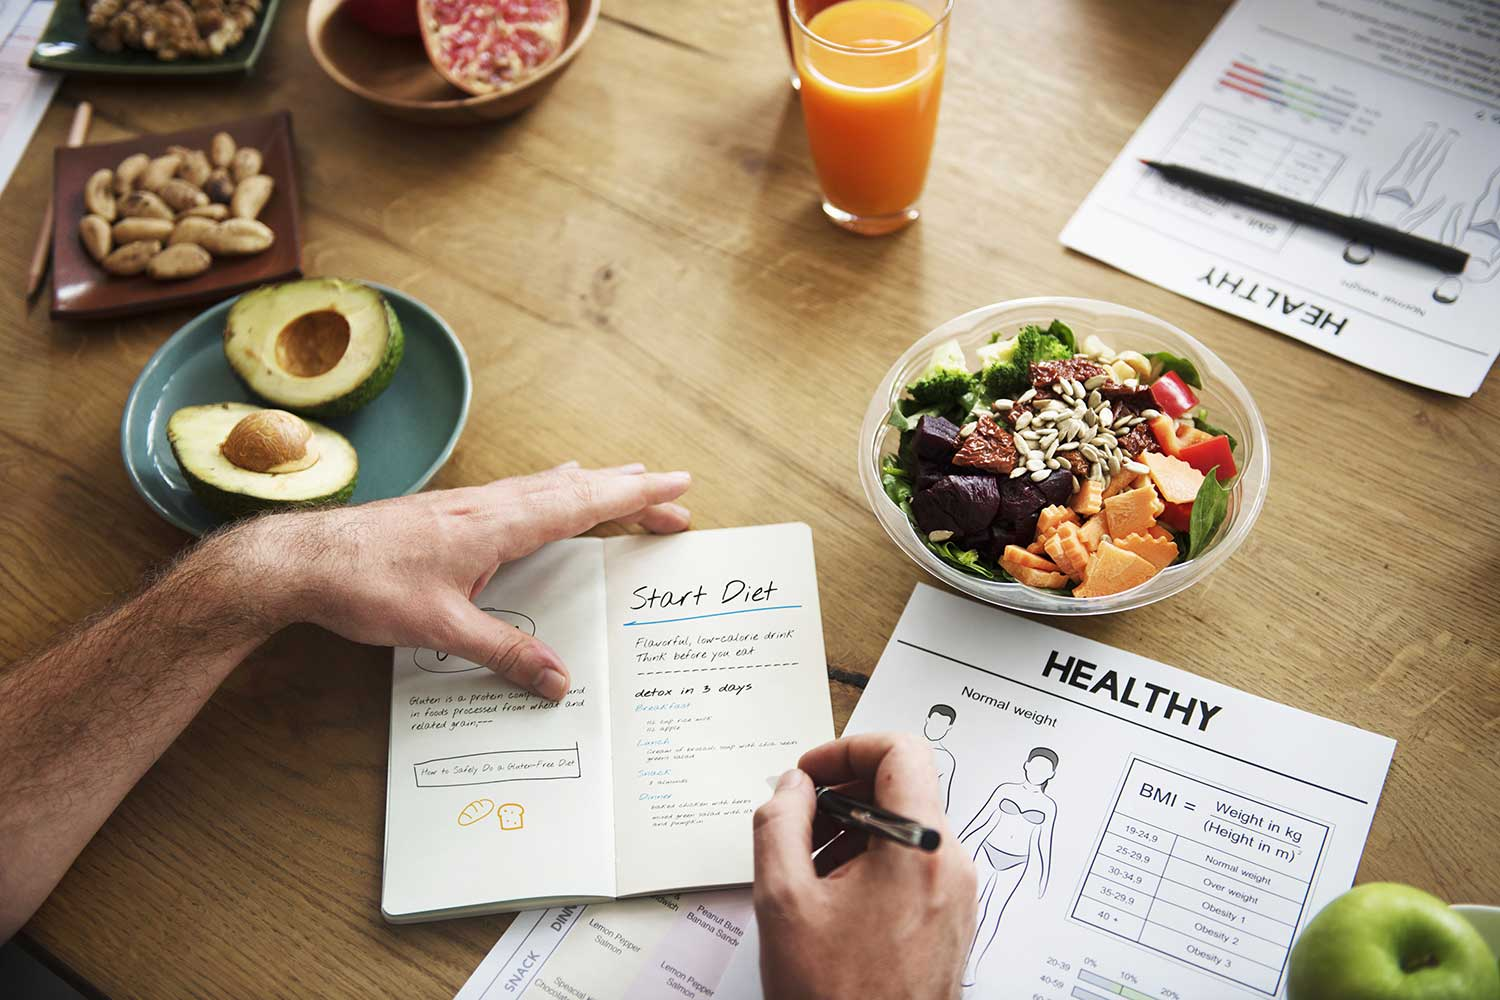 Improved healthy habits